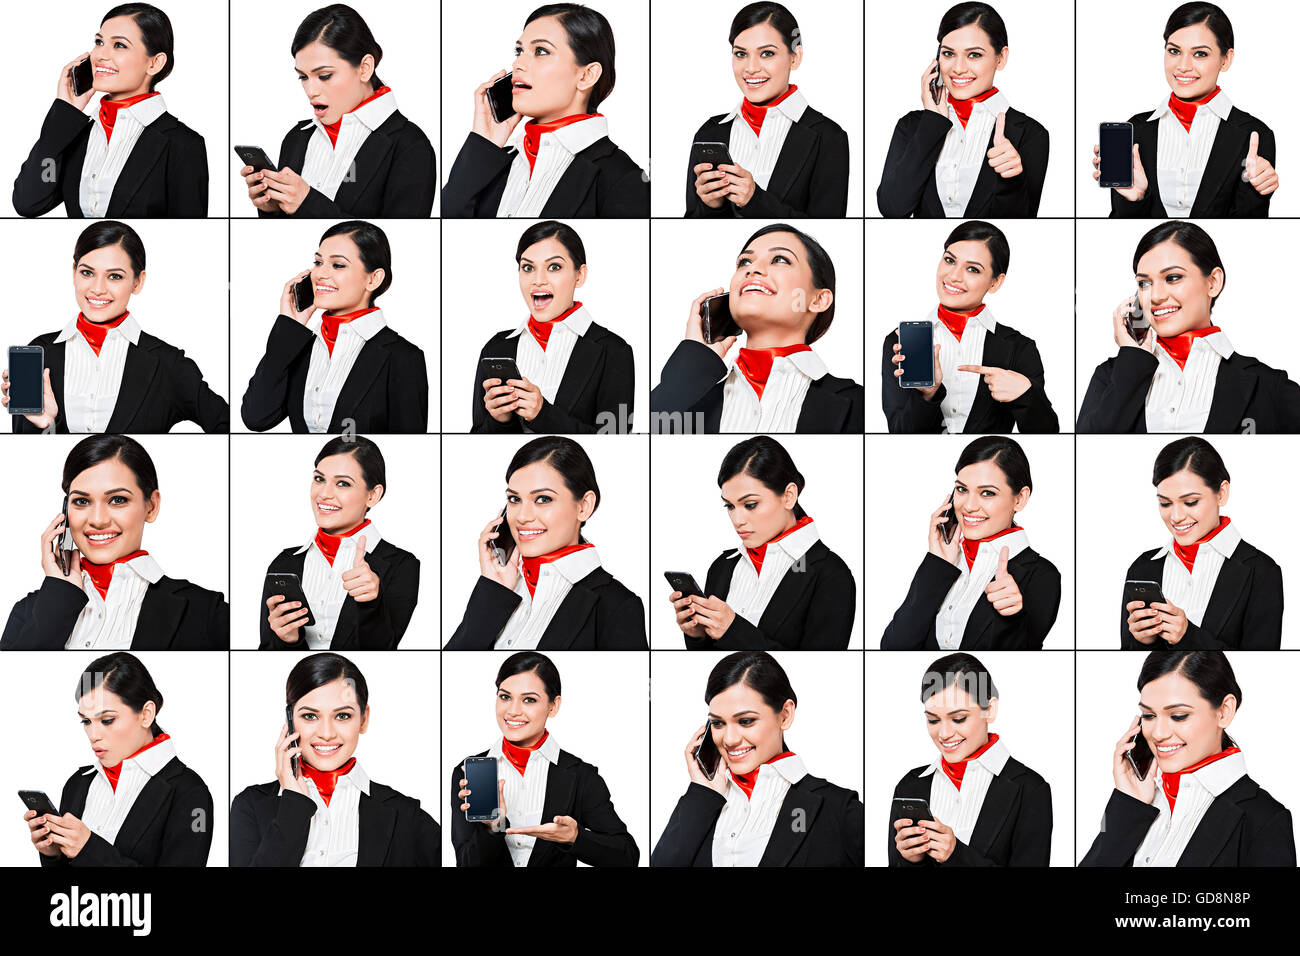 1 Indian Adult Woman Air Hostess Comparisons standing Talking Mobile Phone